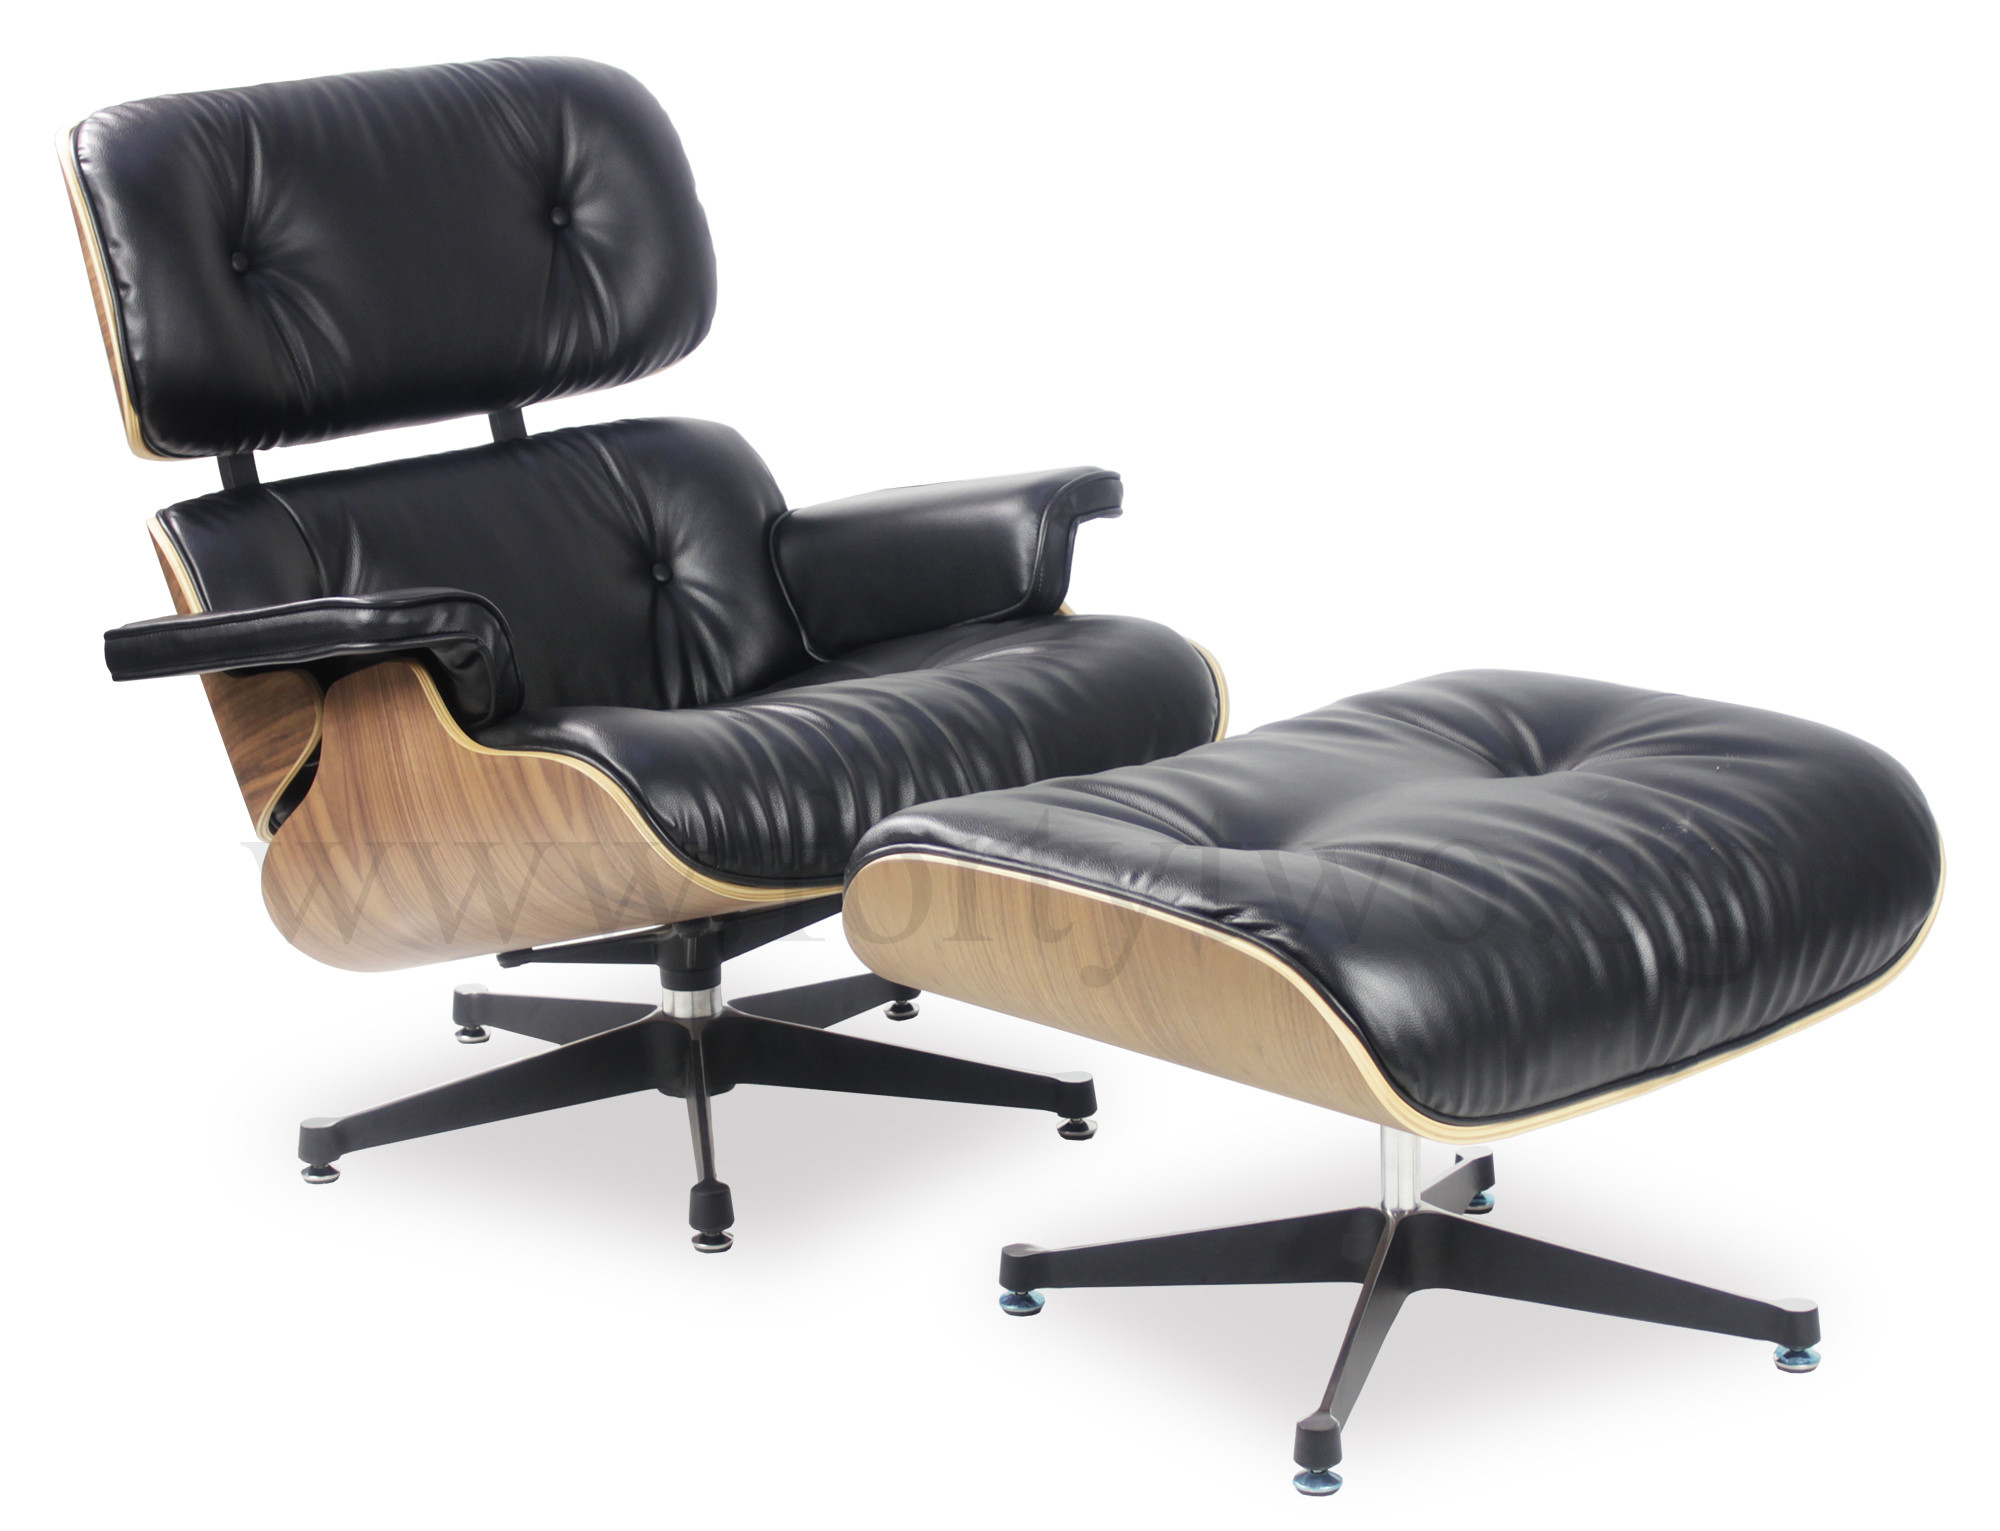 Eames replica lounge chair black leather furniture for Lounge chair replica erfahrungen